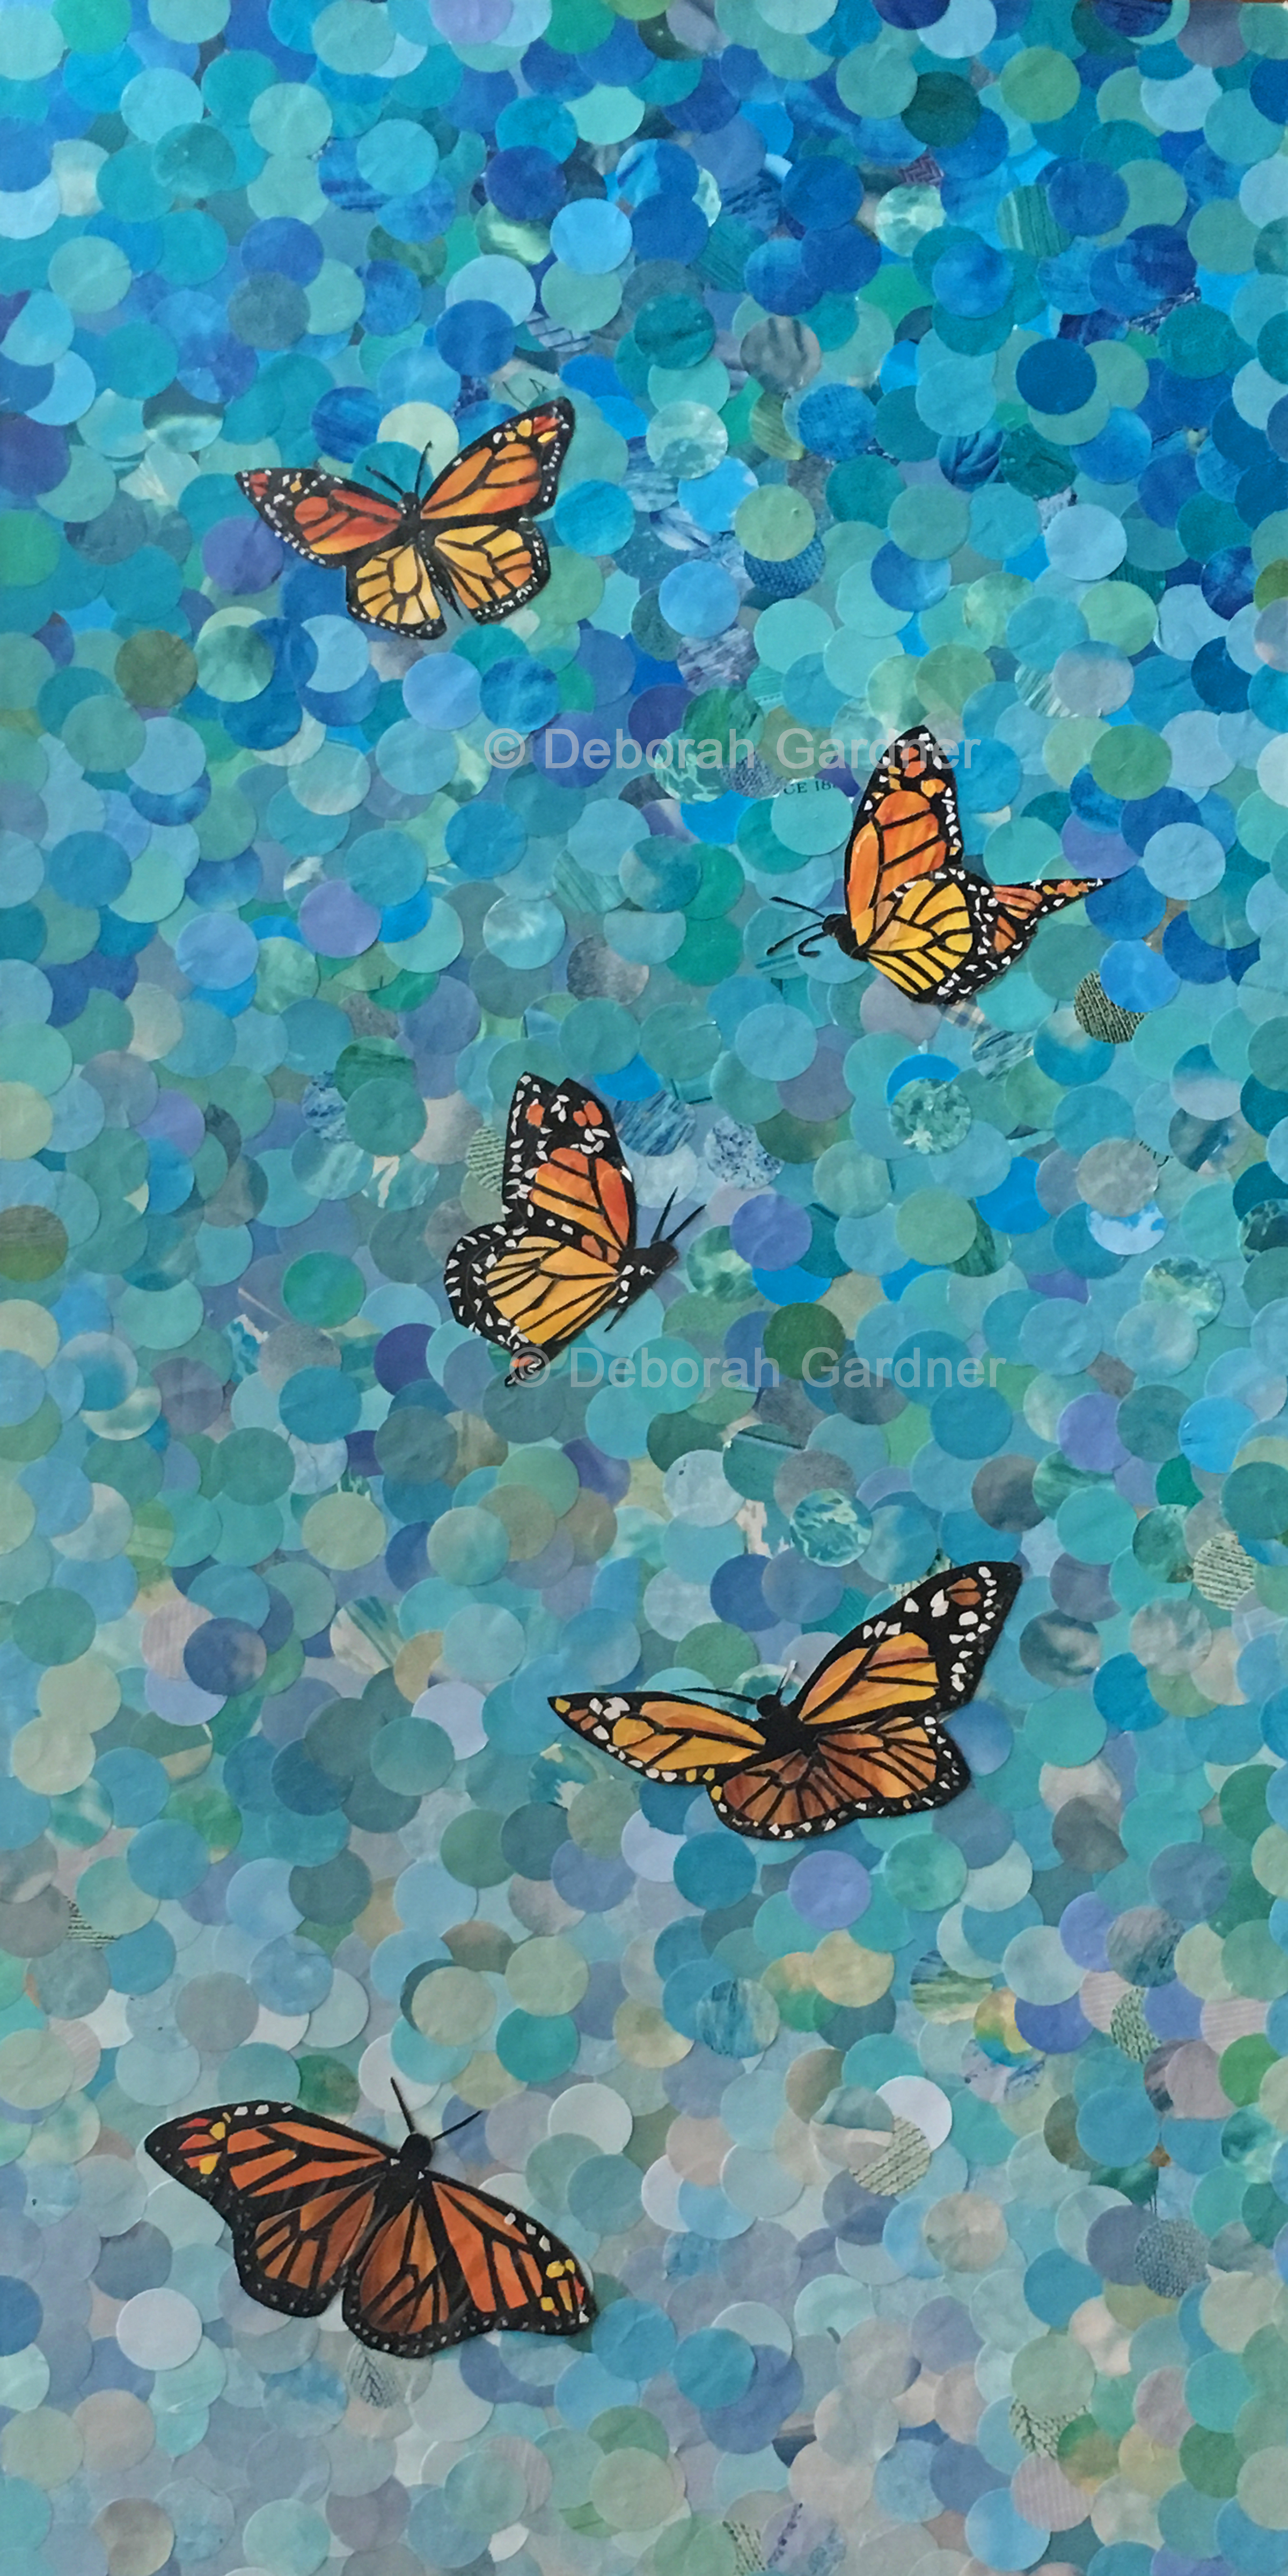 A vertical collage of monarch butterflies against a sky made of blue circles